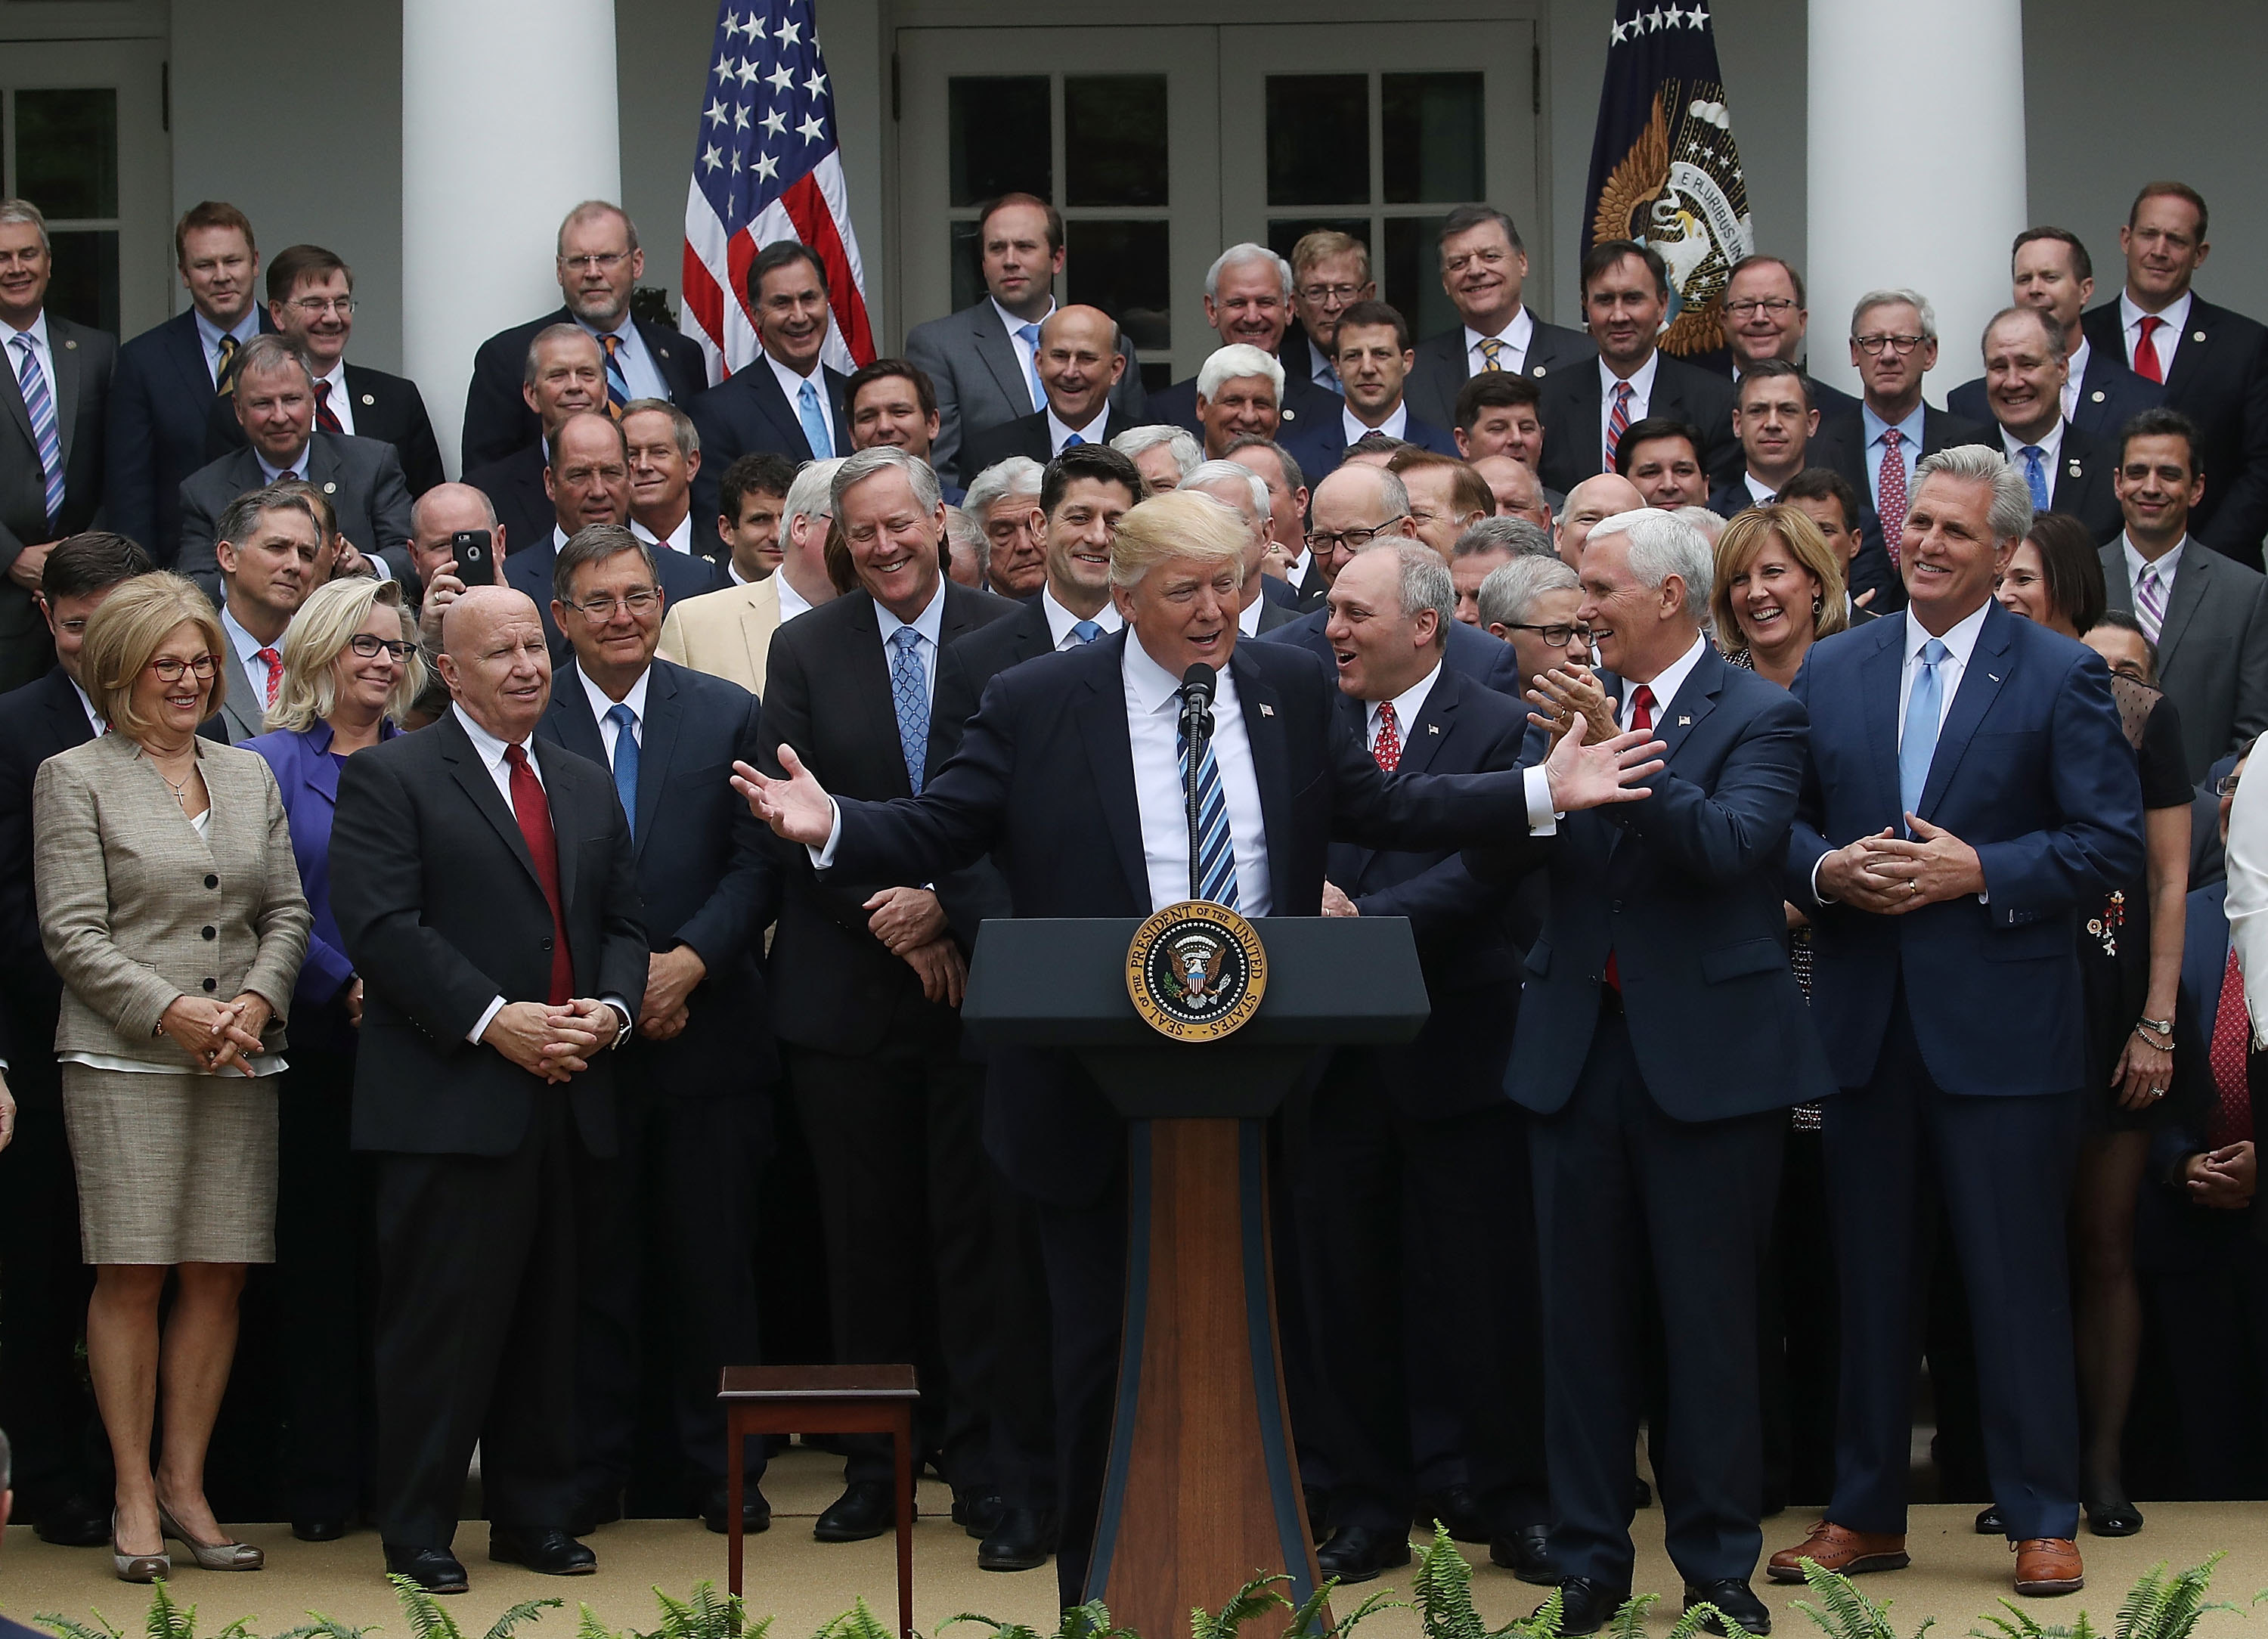 President Trump and House Republicans celebrated passage of the American Health Care Act, although it would hurt those on Medicaid or with pre-existing conditions. (Getty Images)